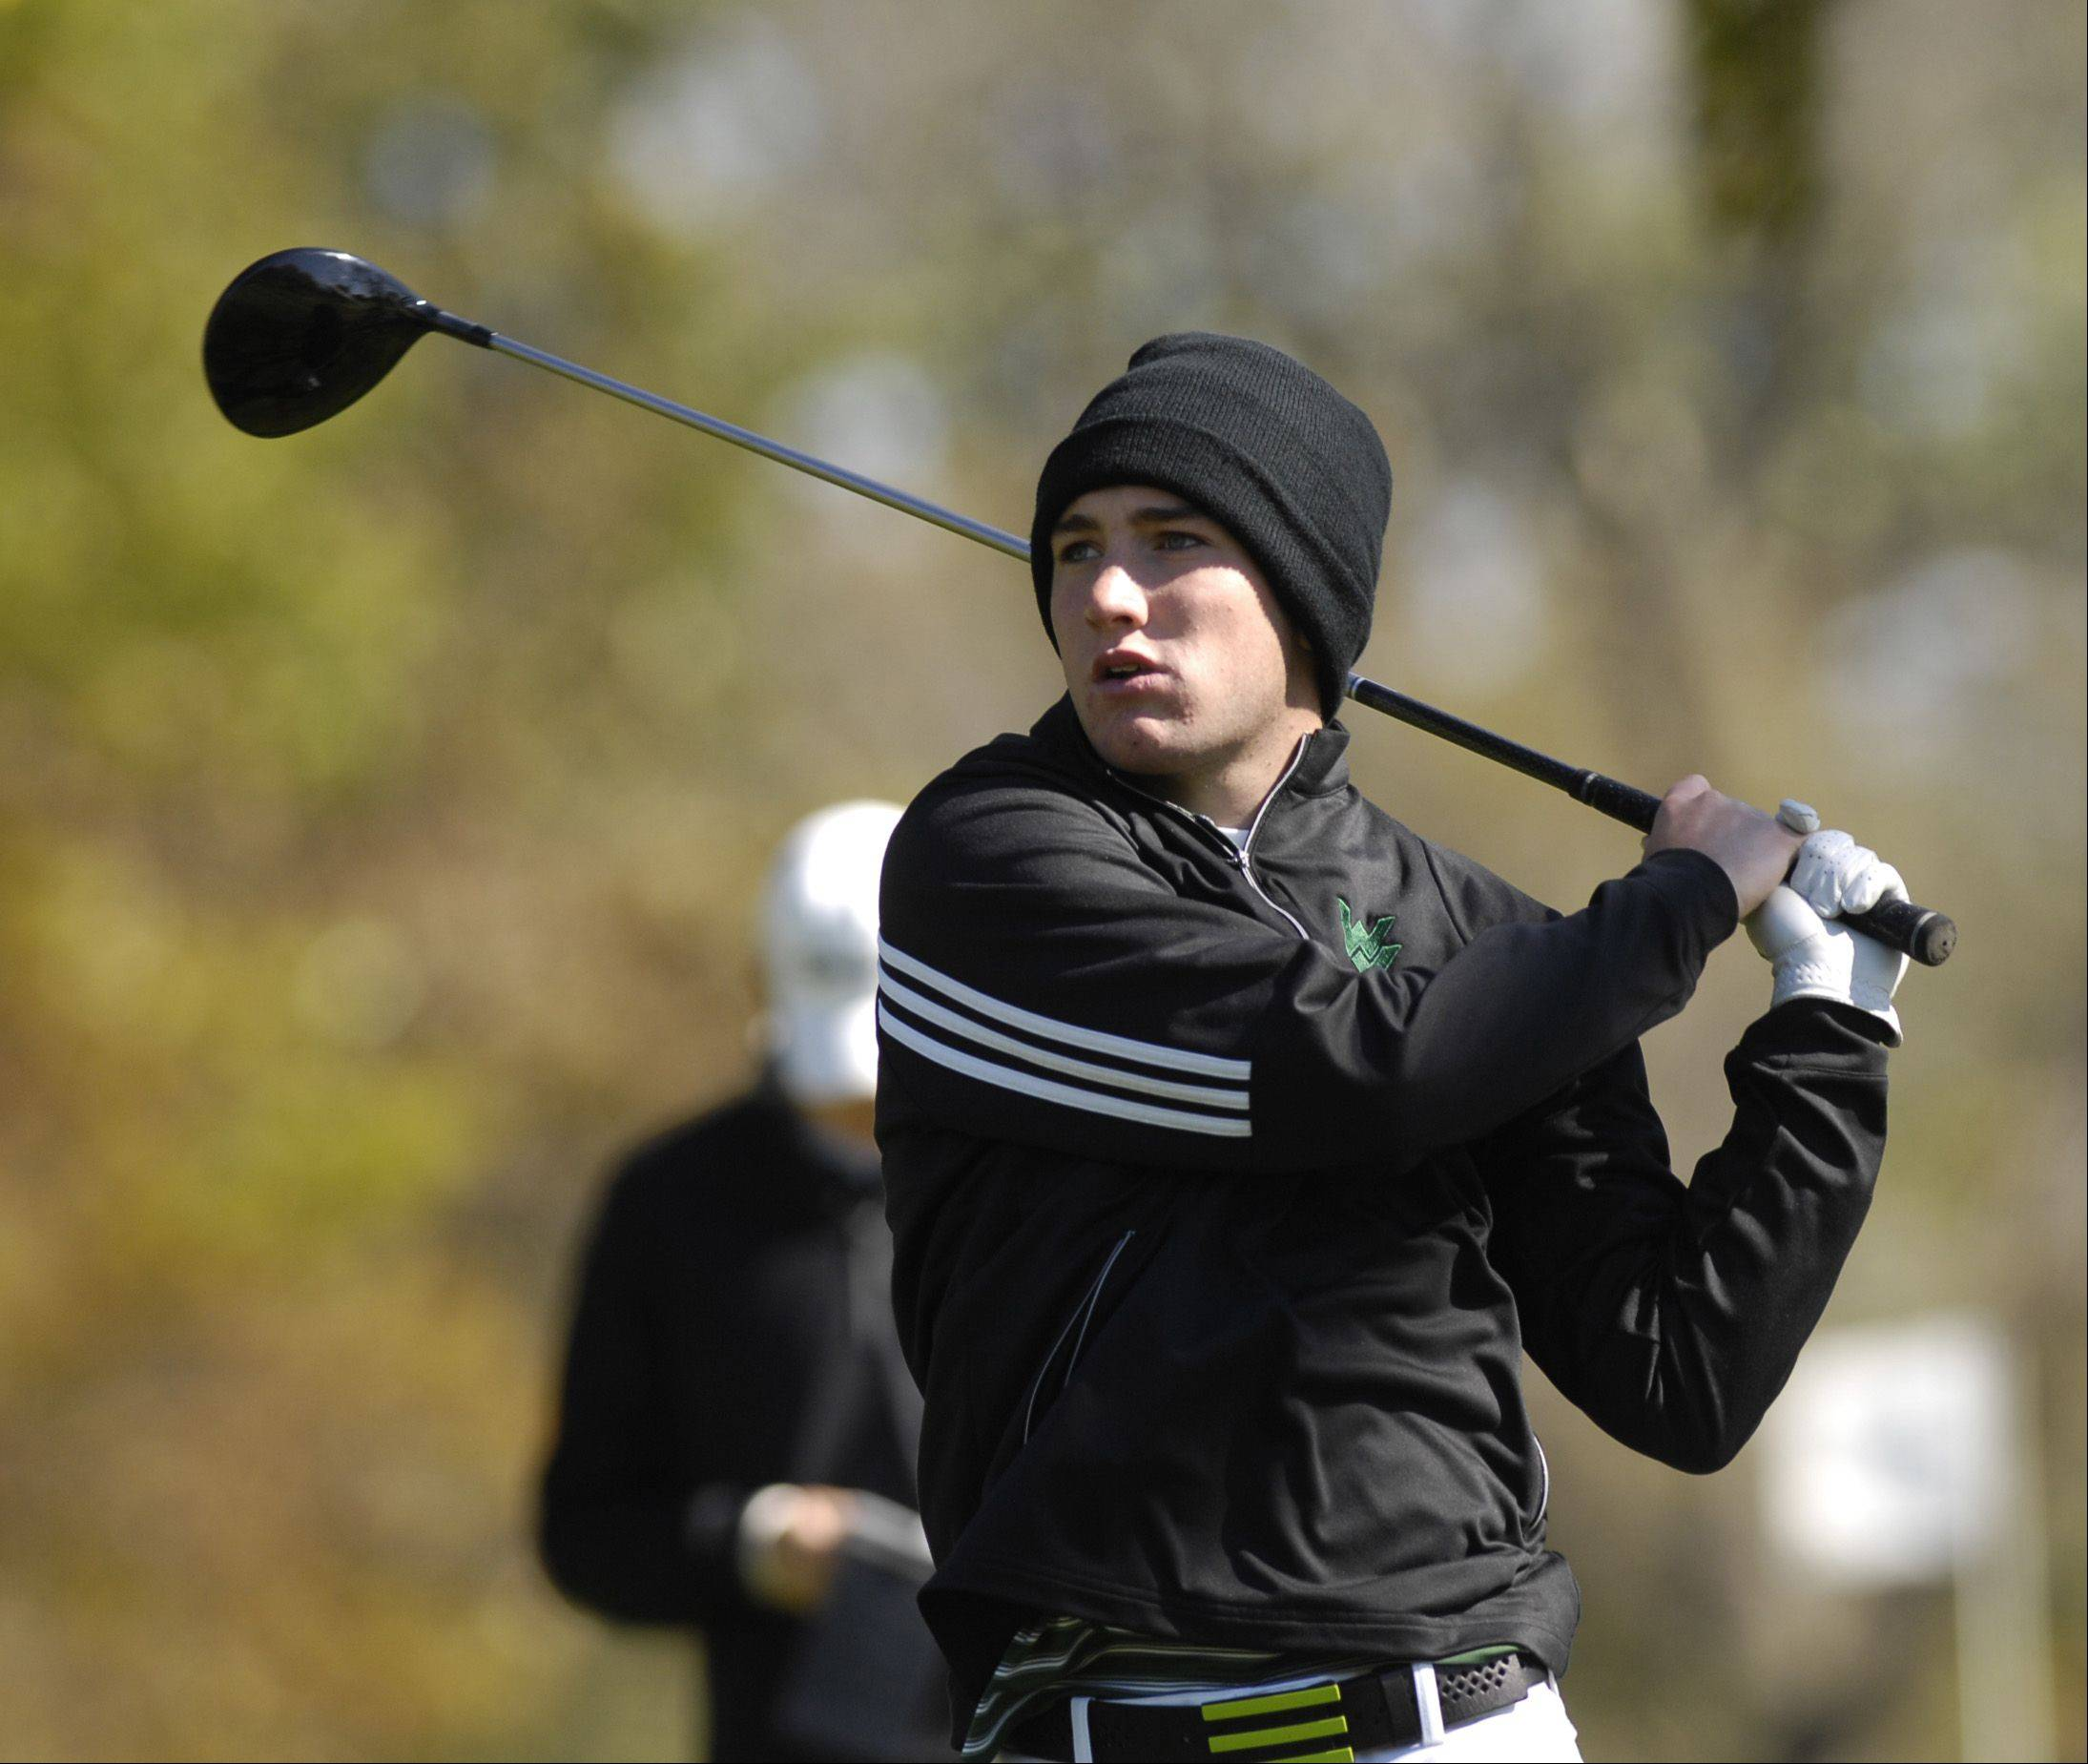 Austin Datz of Waubonsie Valley tees off during the St. Charles East boys varsity golf sectional at St. Andrews Golf Club in West Chicago, Monday.